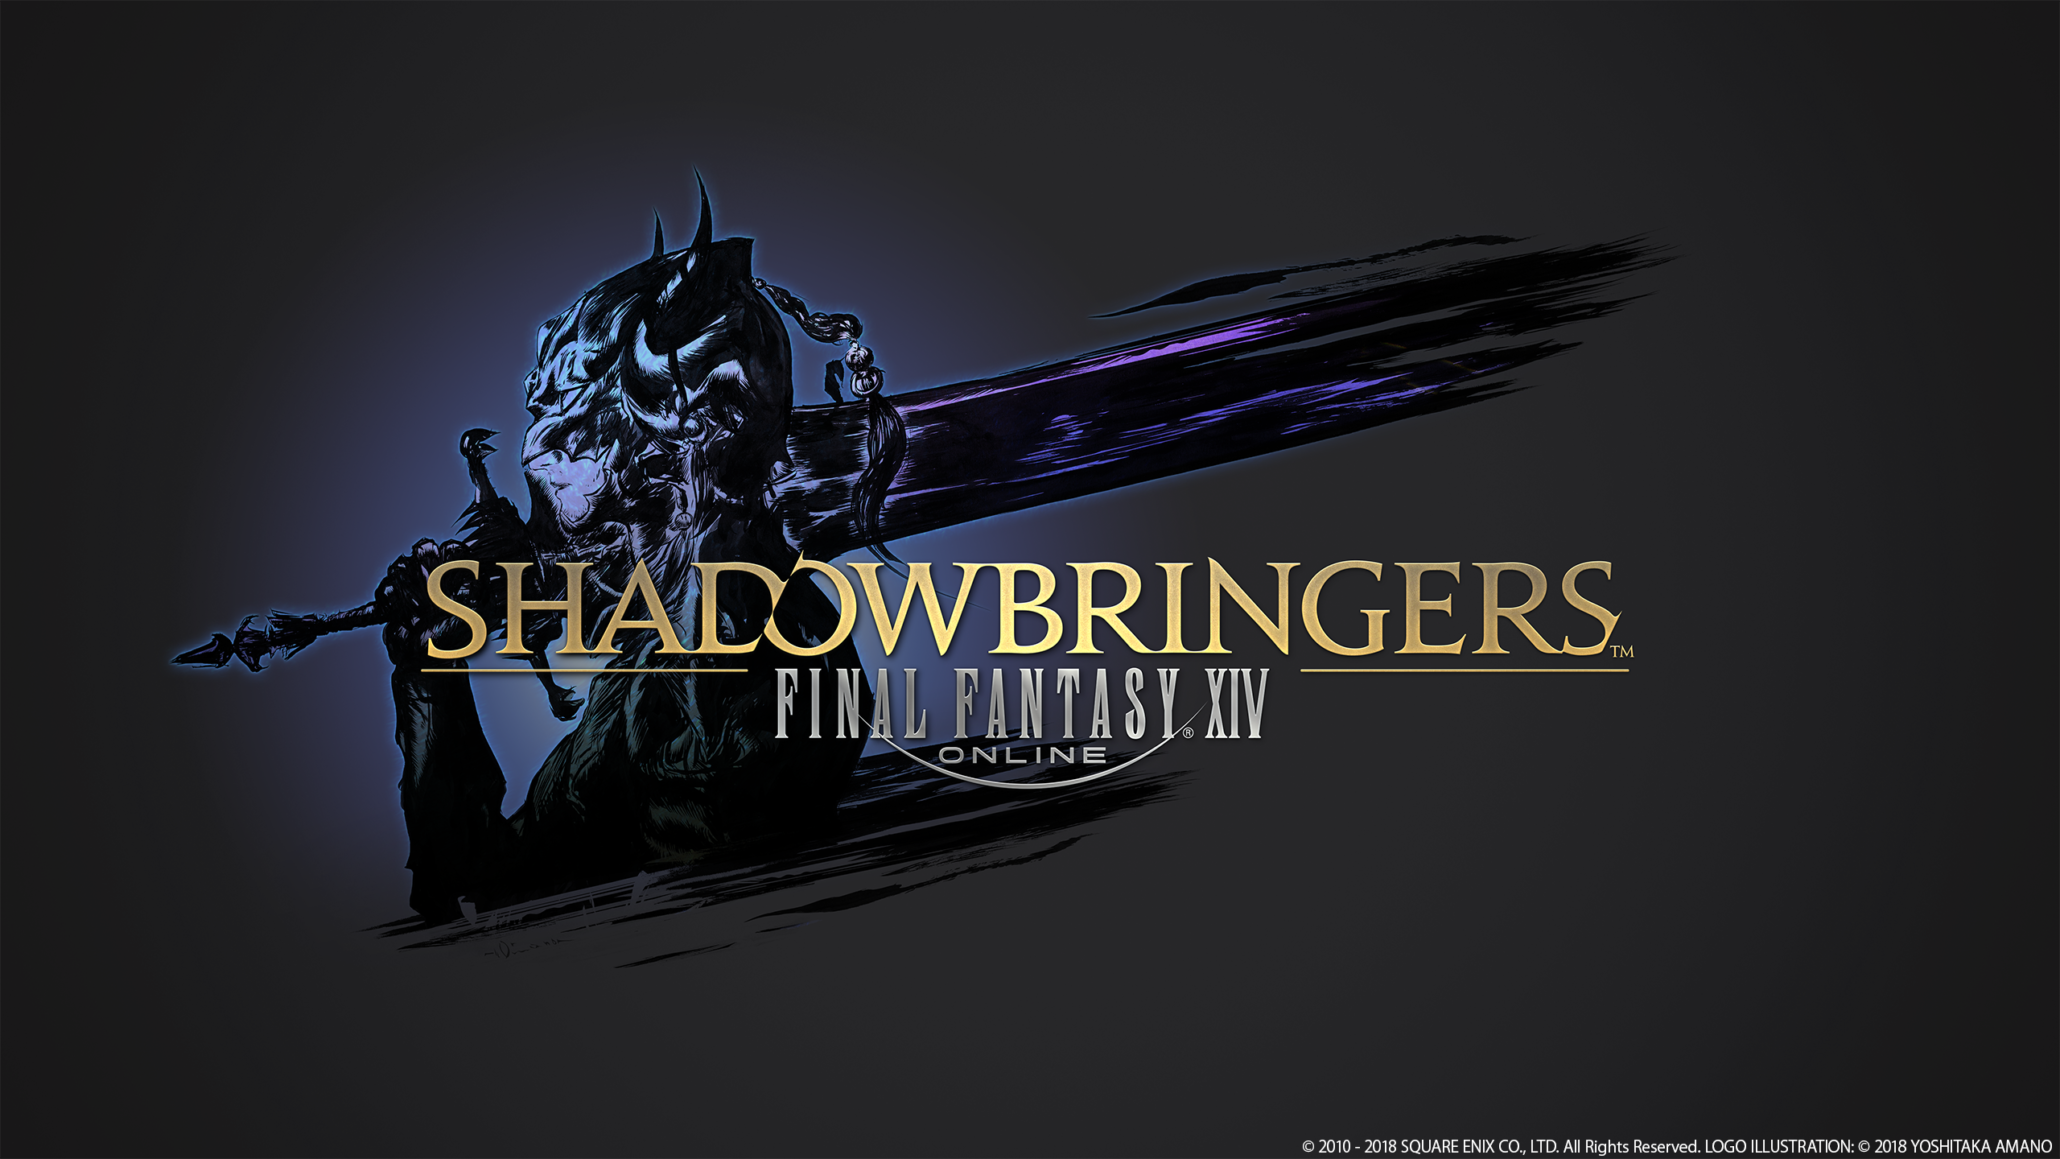 Final Fantasy XIV: Shadowbringers Hands.